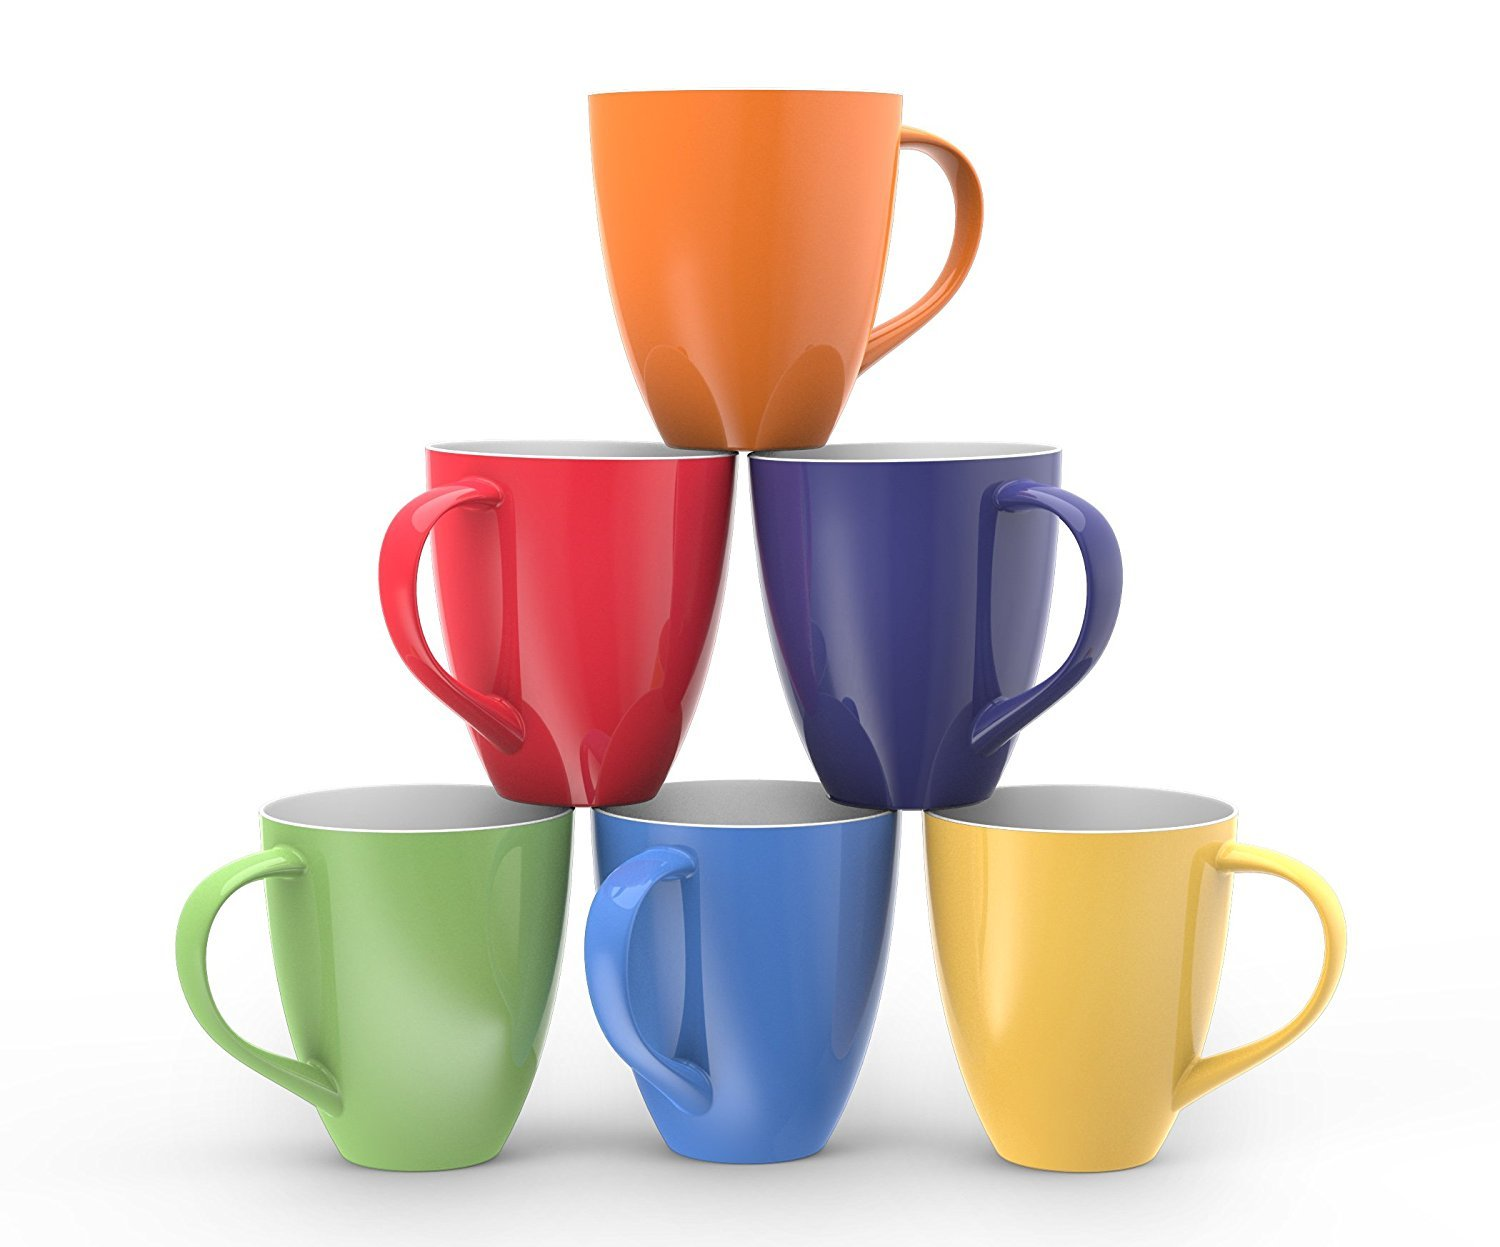 Francois et Mimi Set of 6 Large-sized 16 Ounce Ceramic Coffee Mugs (Solid Colorful) by Francois et Mimi B01D1Y2FDG  Solid Colorful